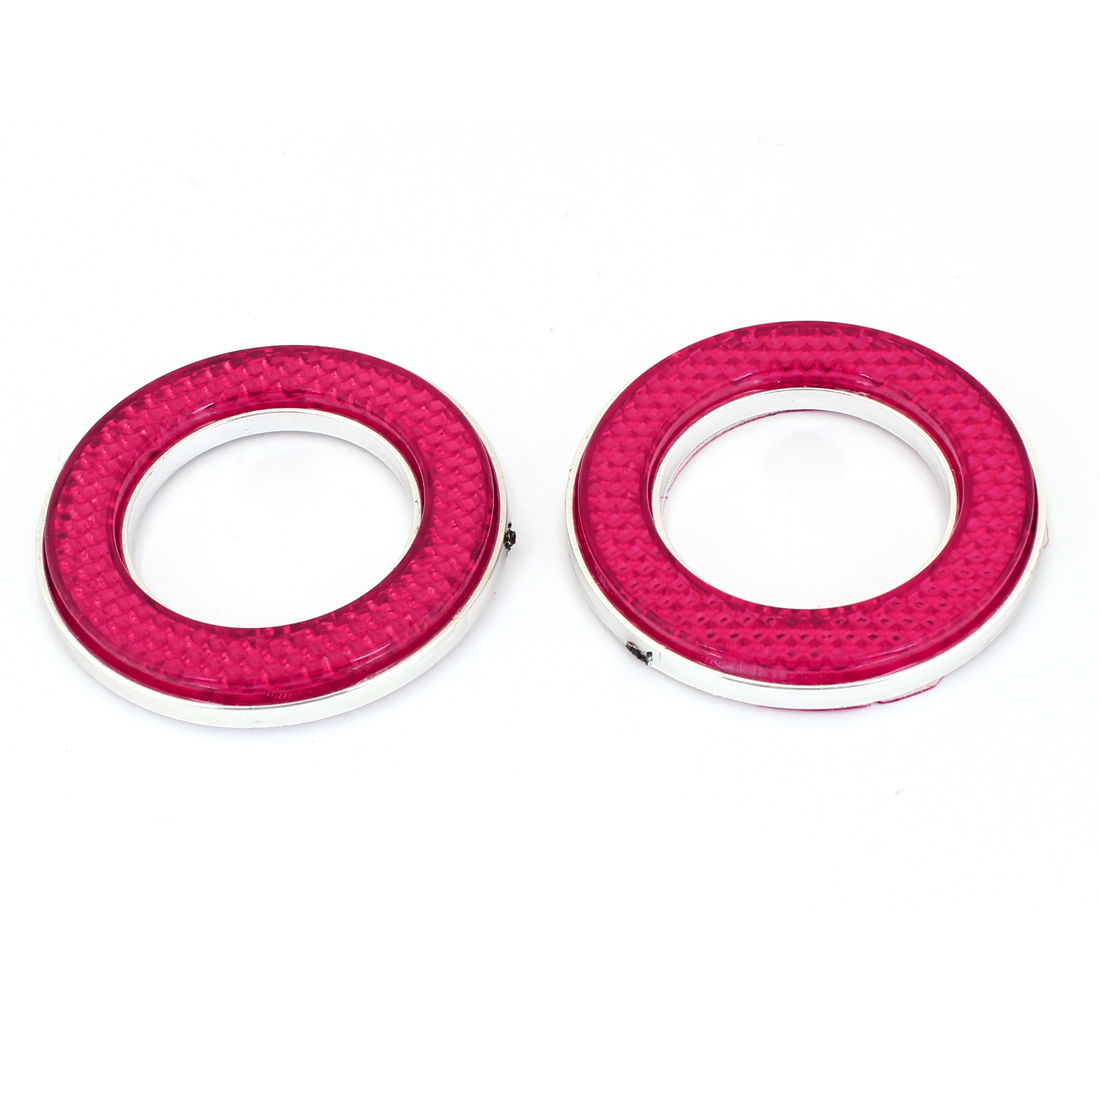 Vehicle Car Exterior Silver Tone Red Circle Badge Emblem Stickers 2 Pcs